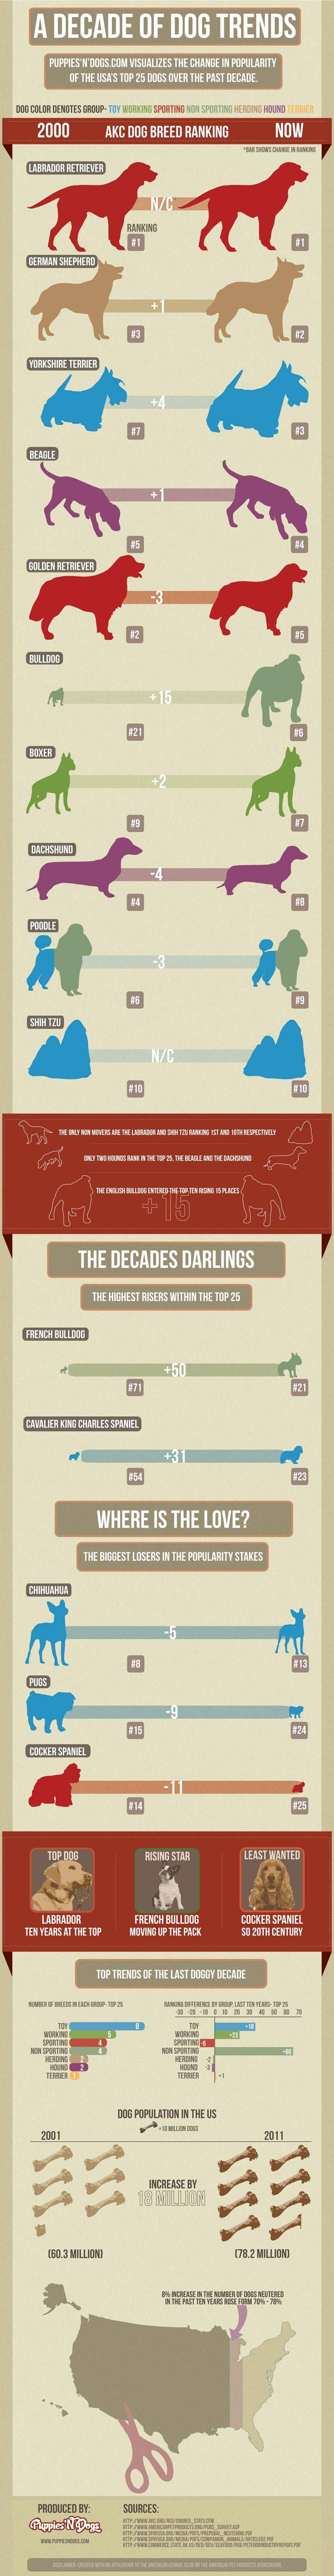 Favorite dog breeds, how our favorites have changed over time, and other interesting dog info.